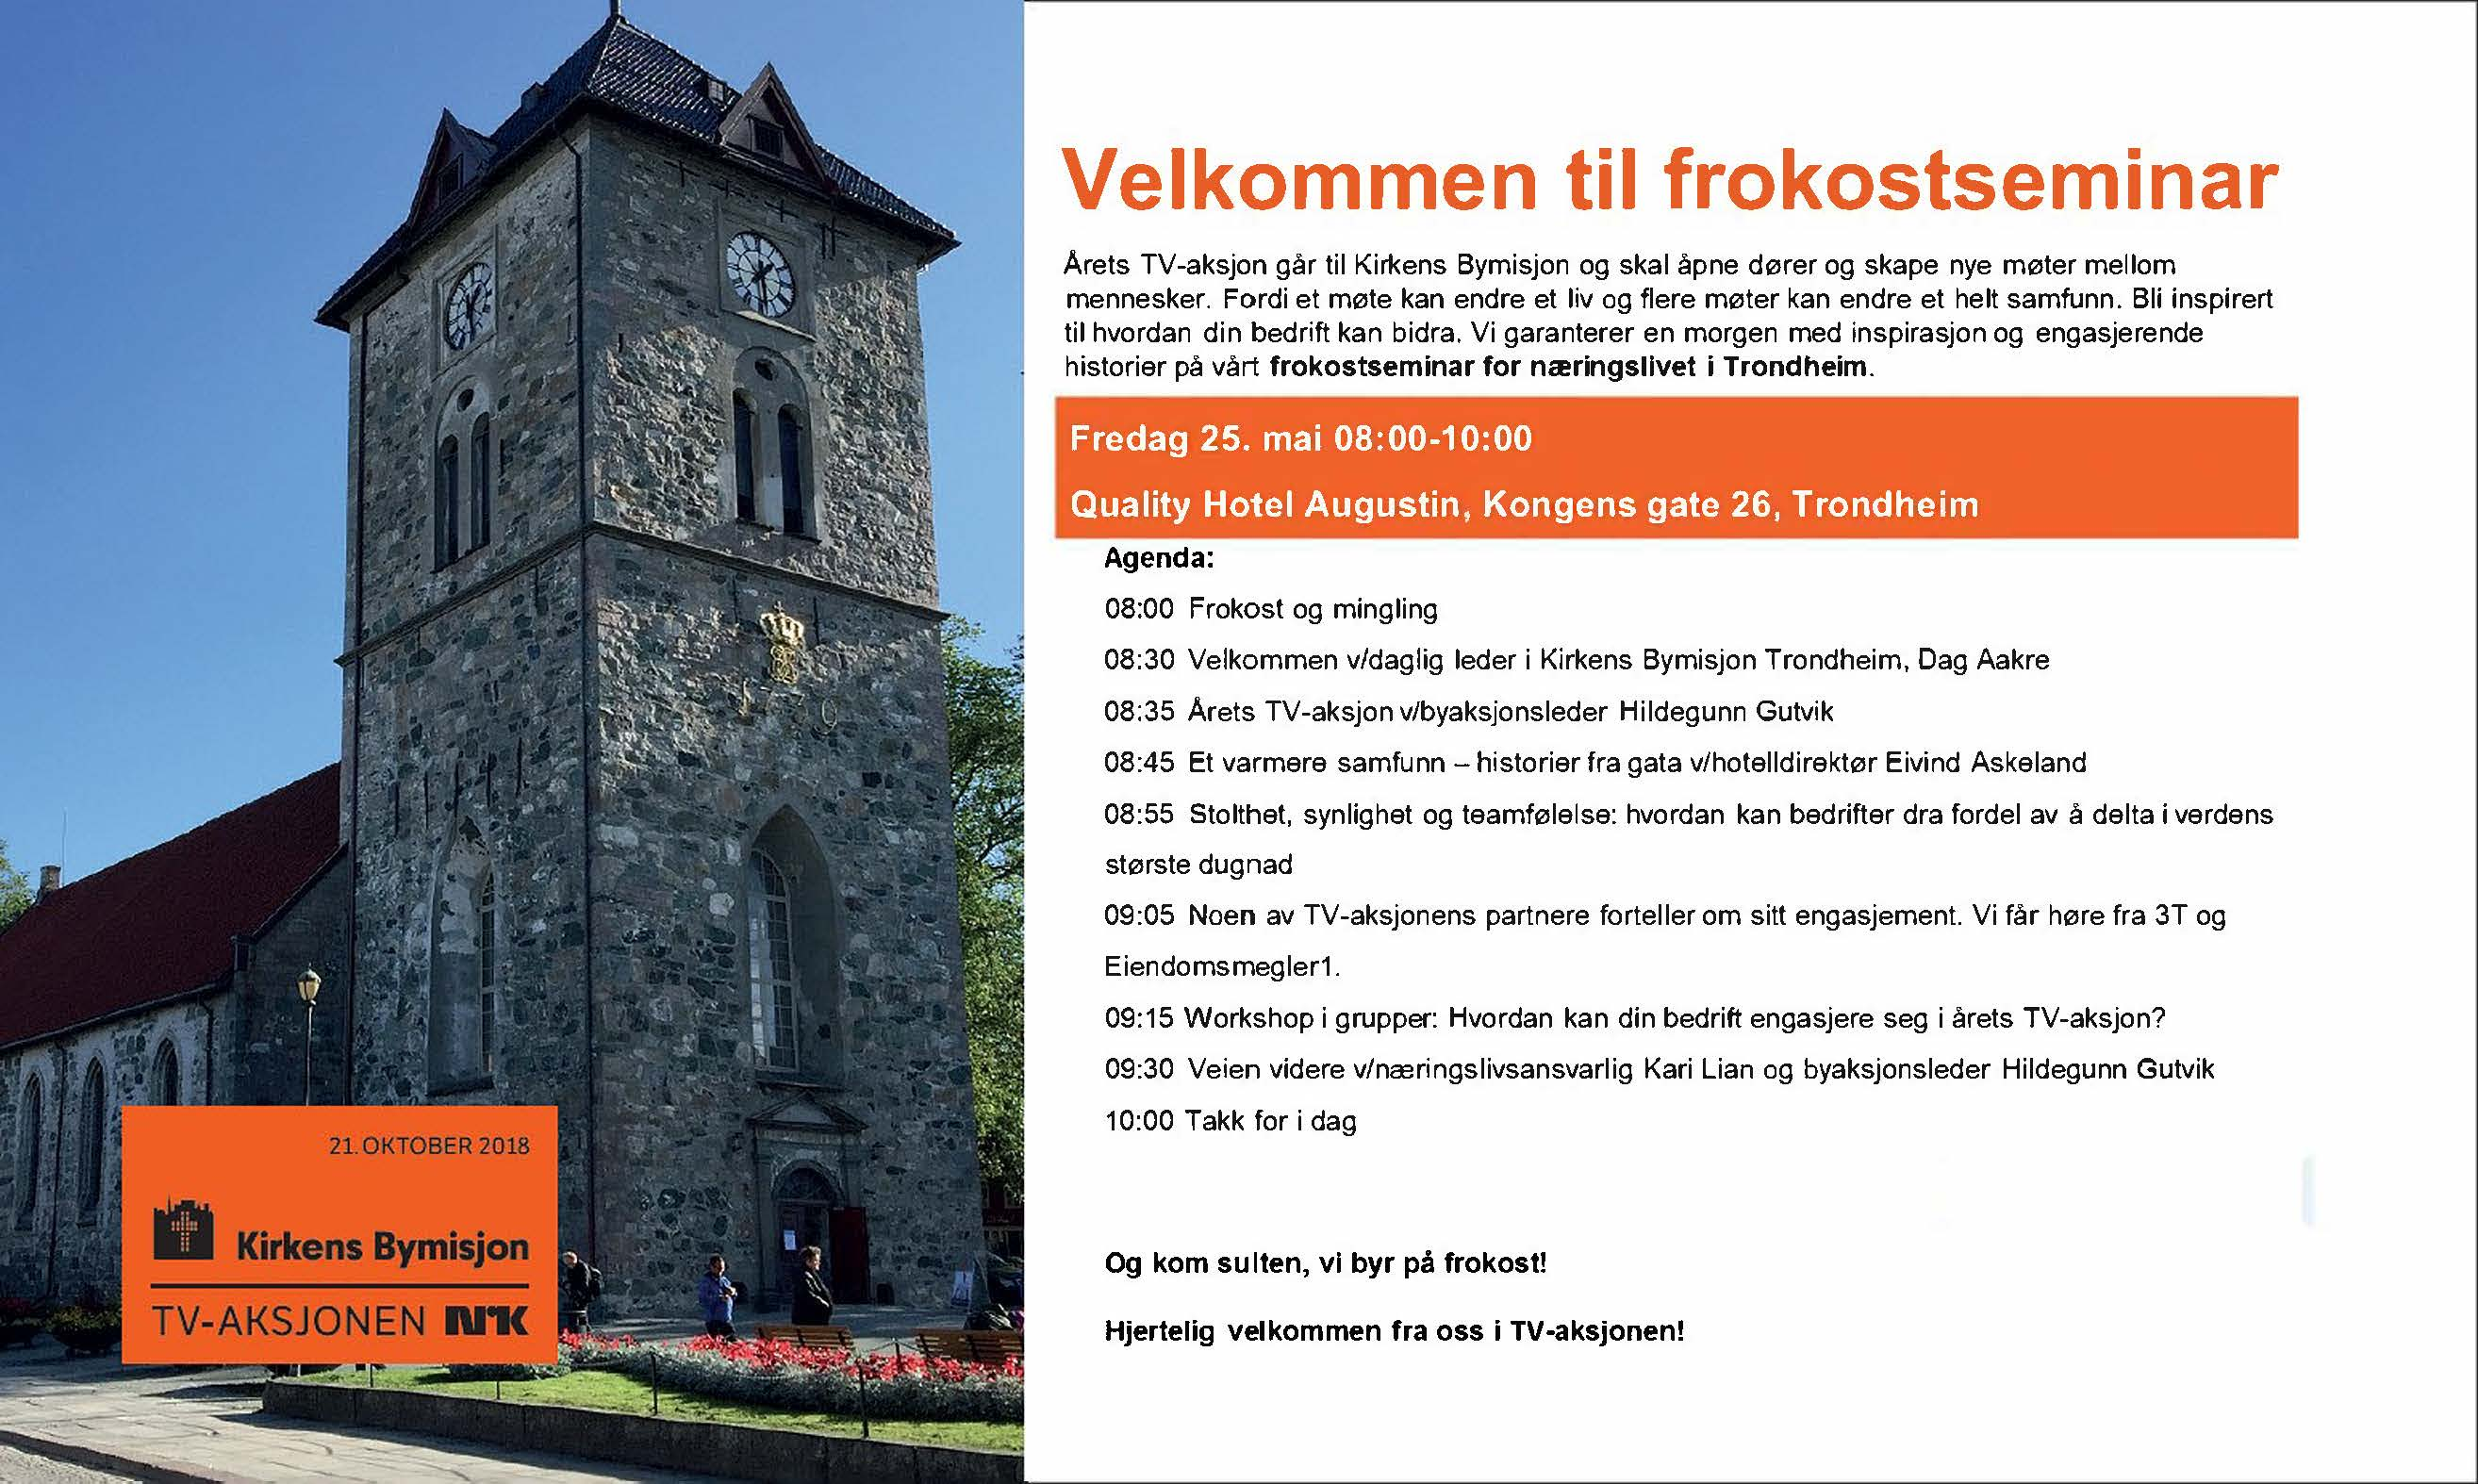 Fullstendig program